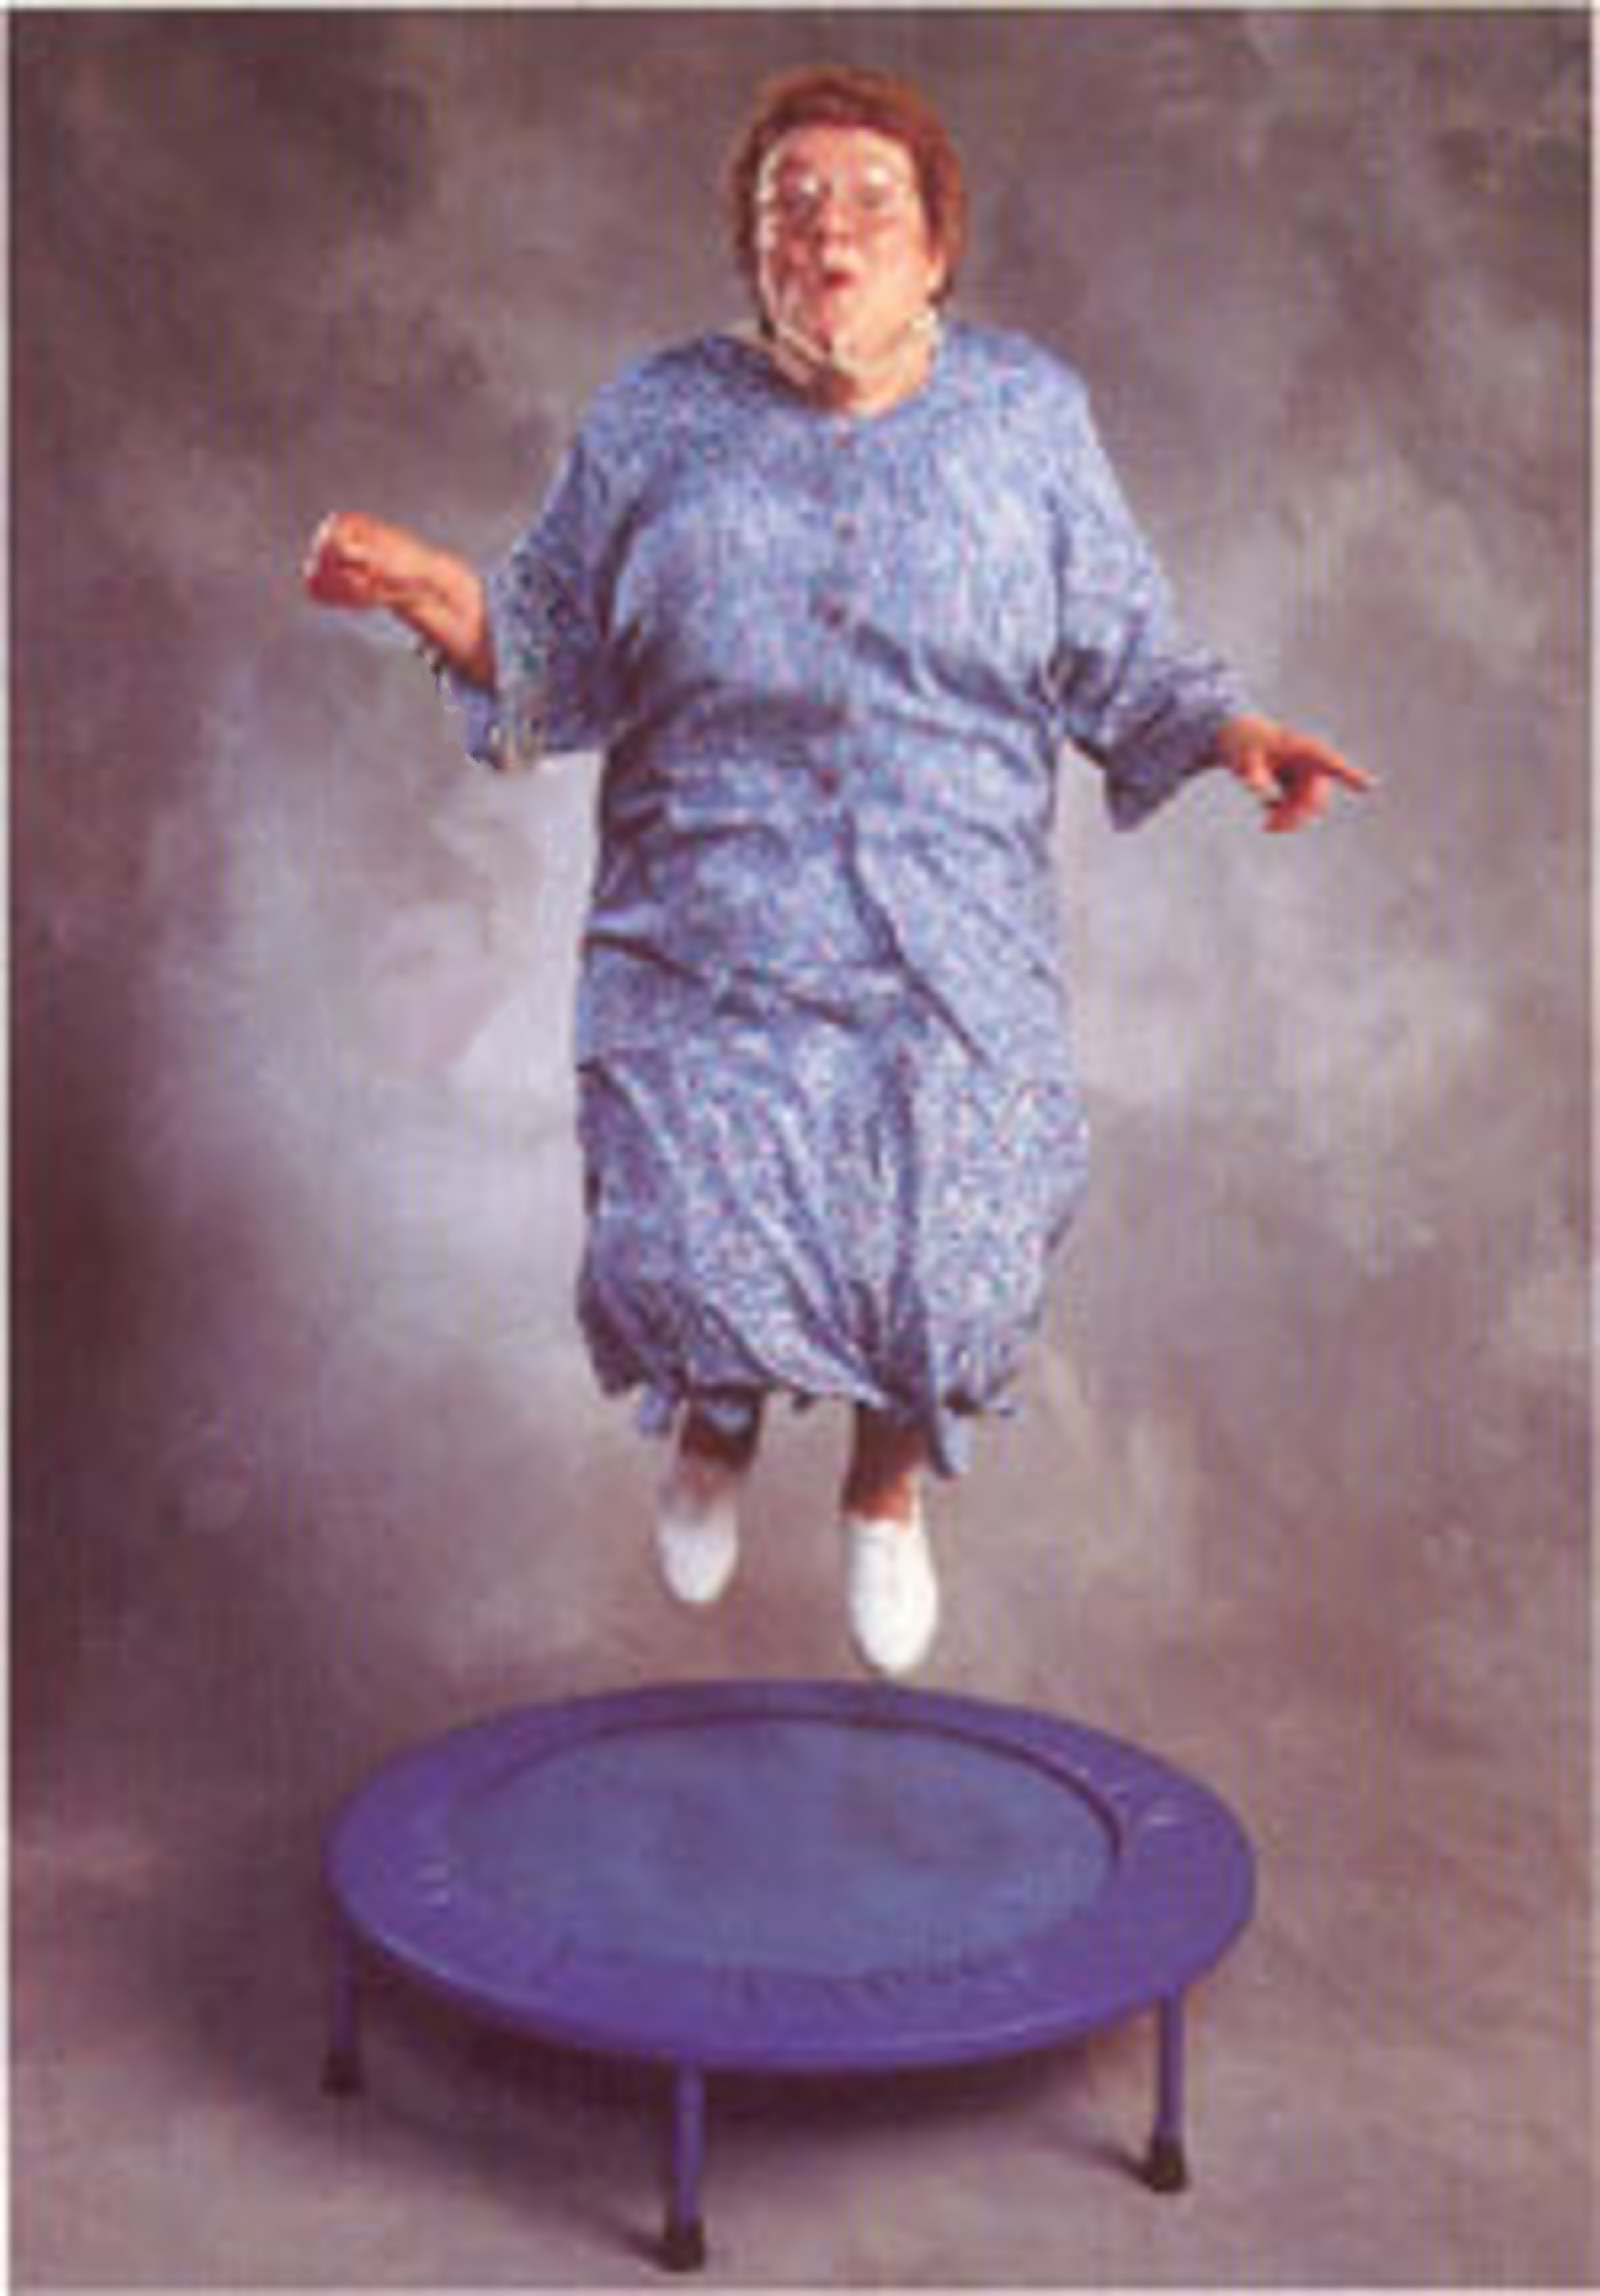 old-lady-trampoline